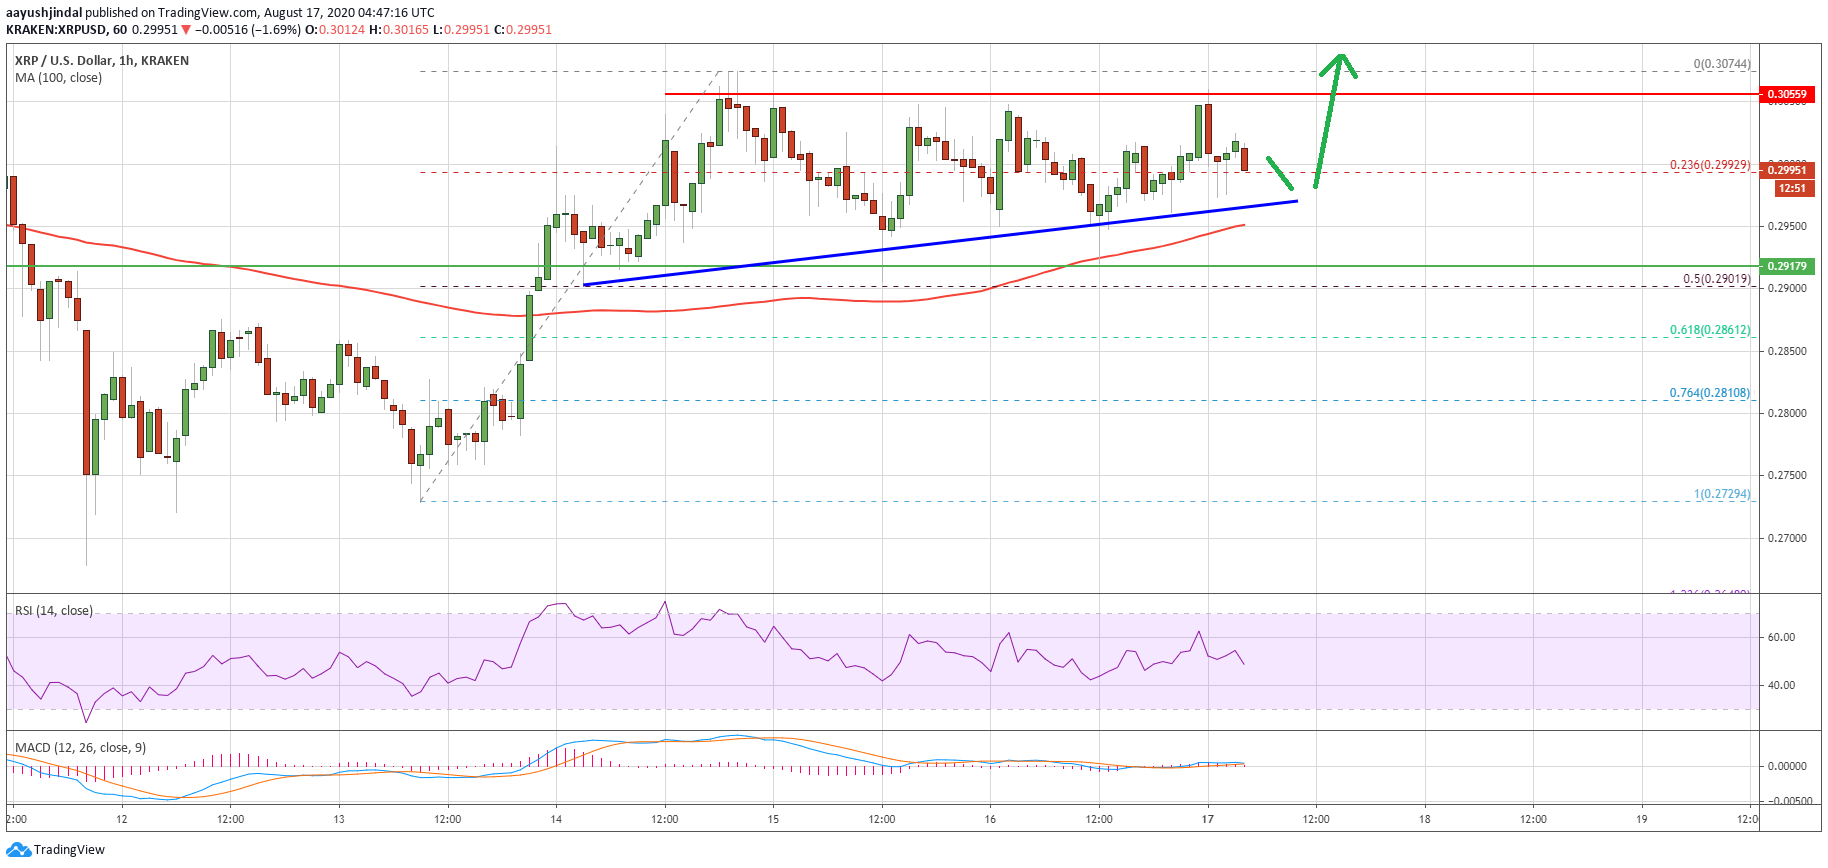 Ripple (XRP) Price Holds Strong at $0.30: A Strengthening Case for Upside